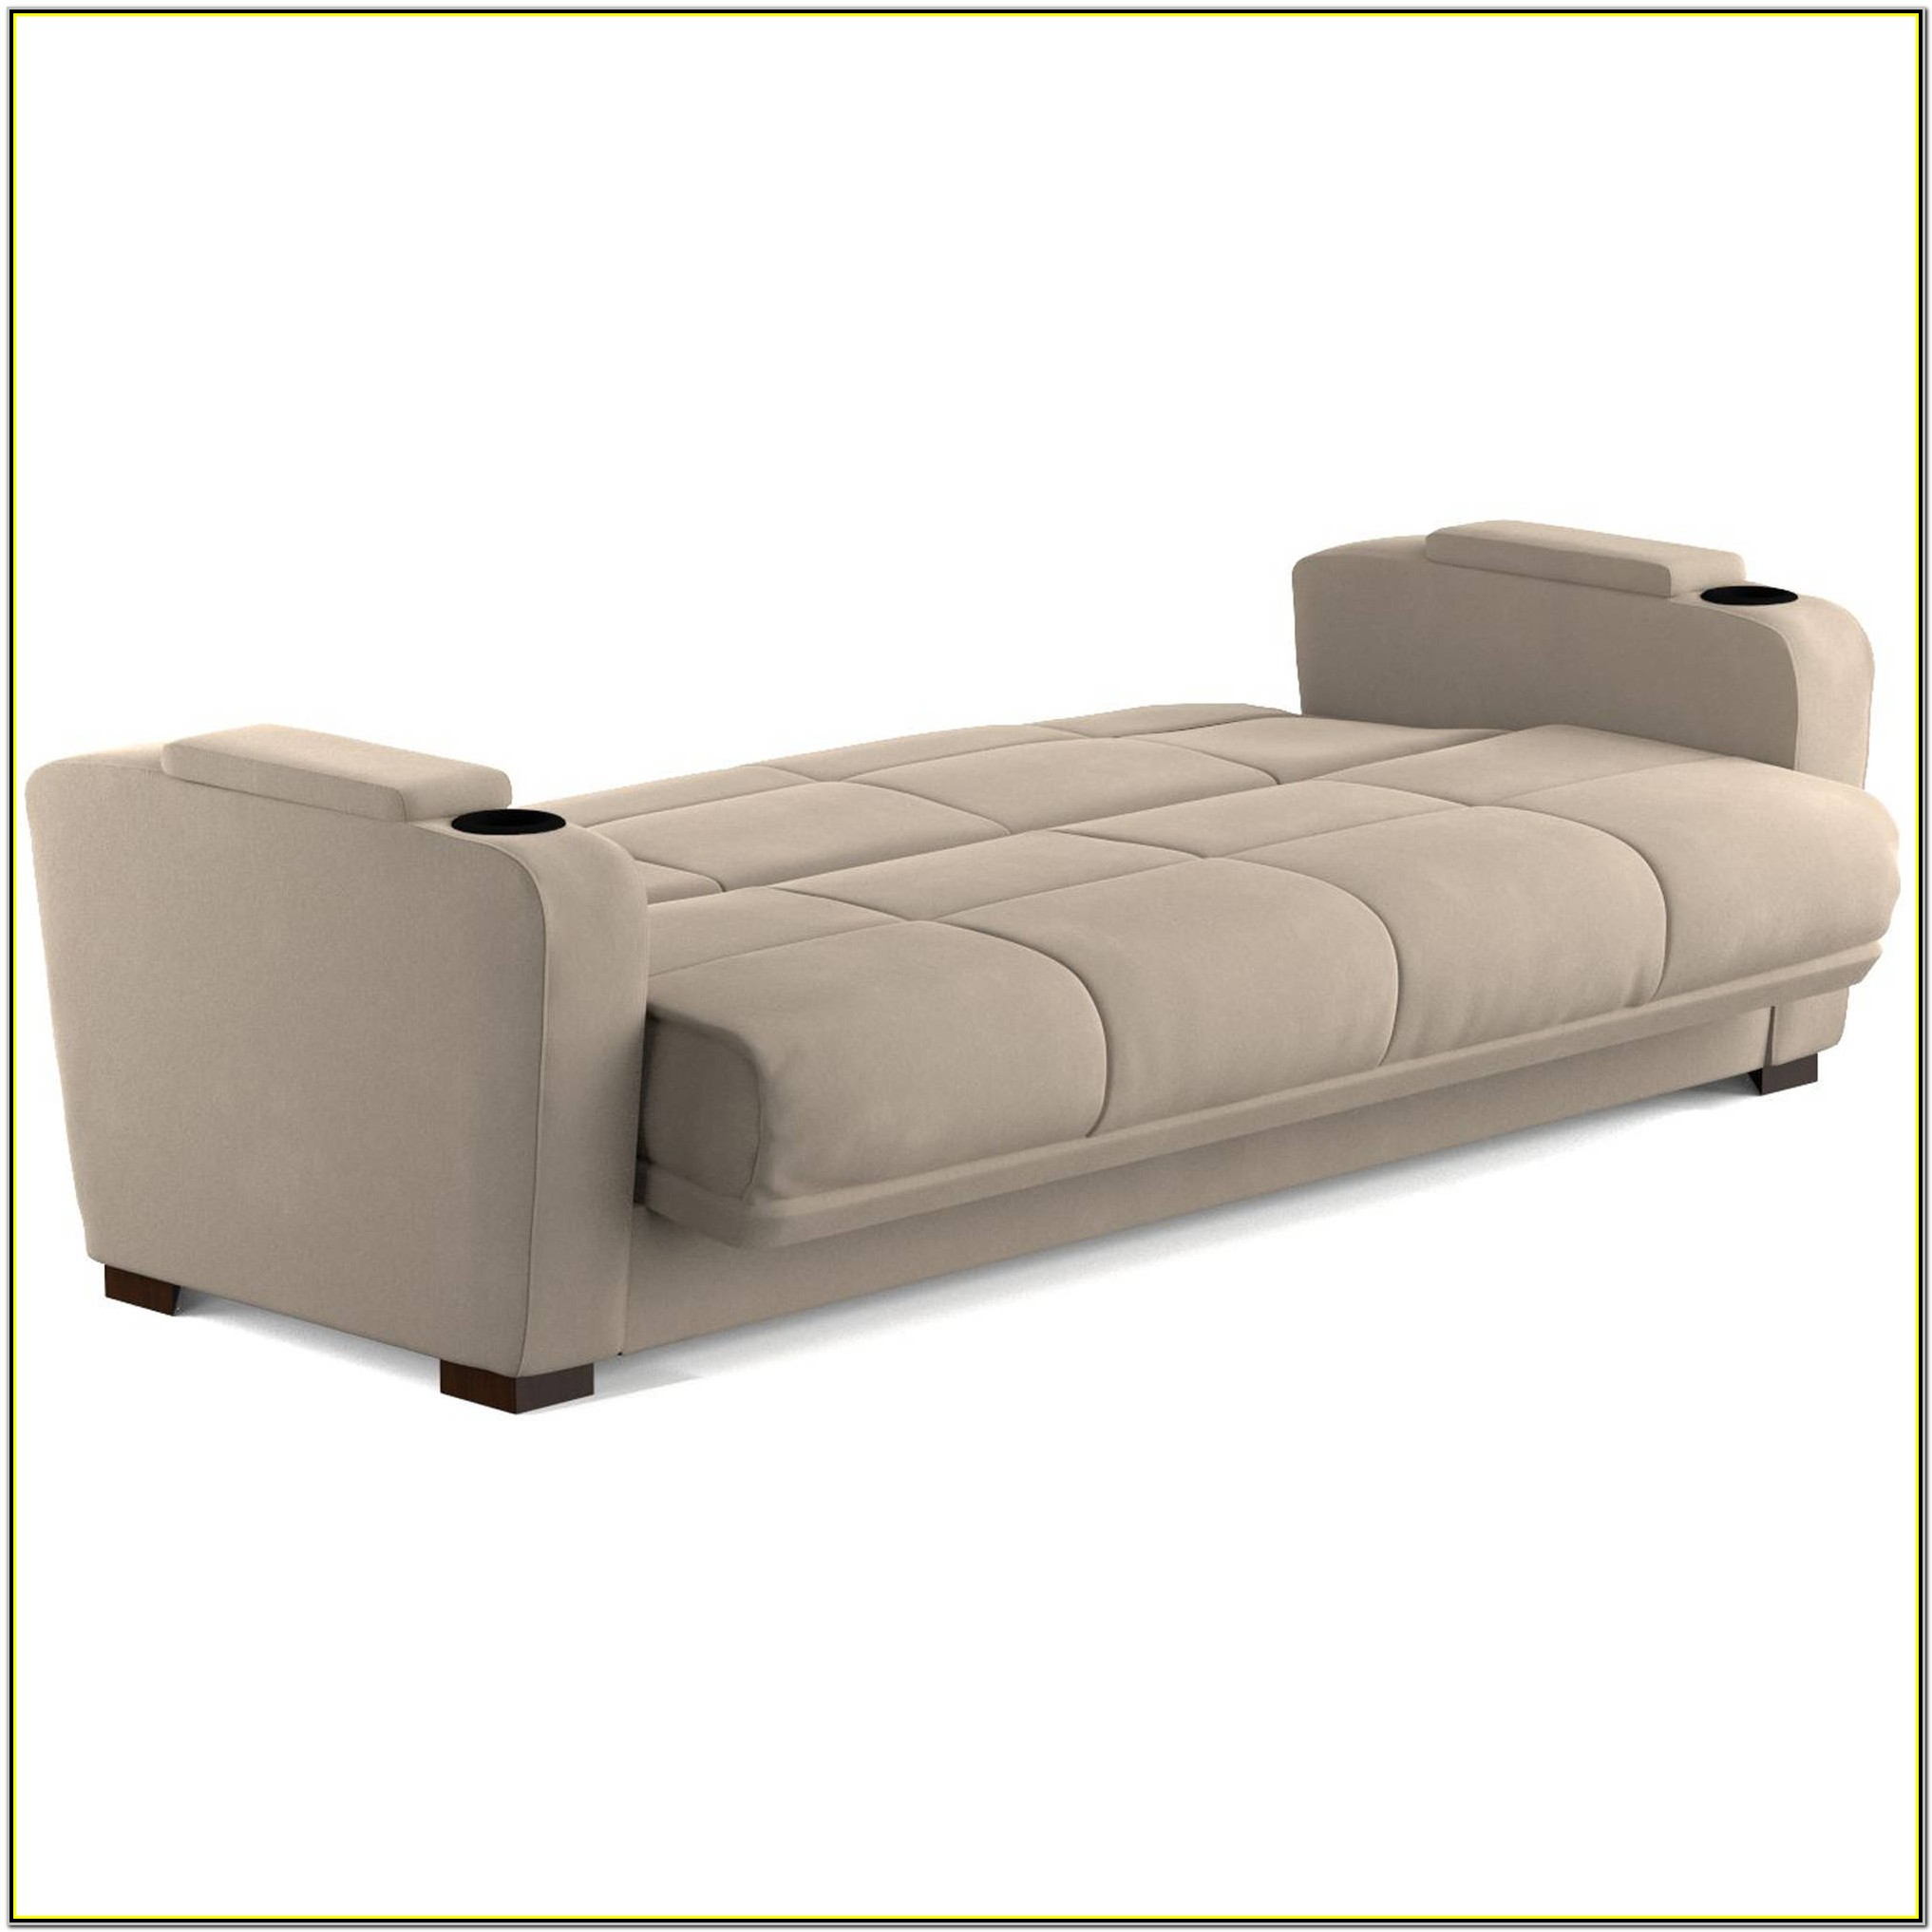 Thomas Full Size Futon Sofa Bed With Storage Space